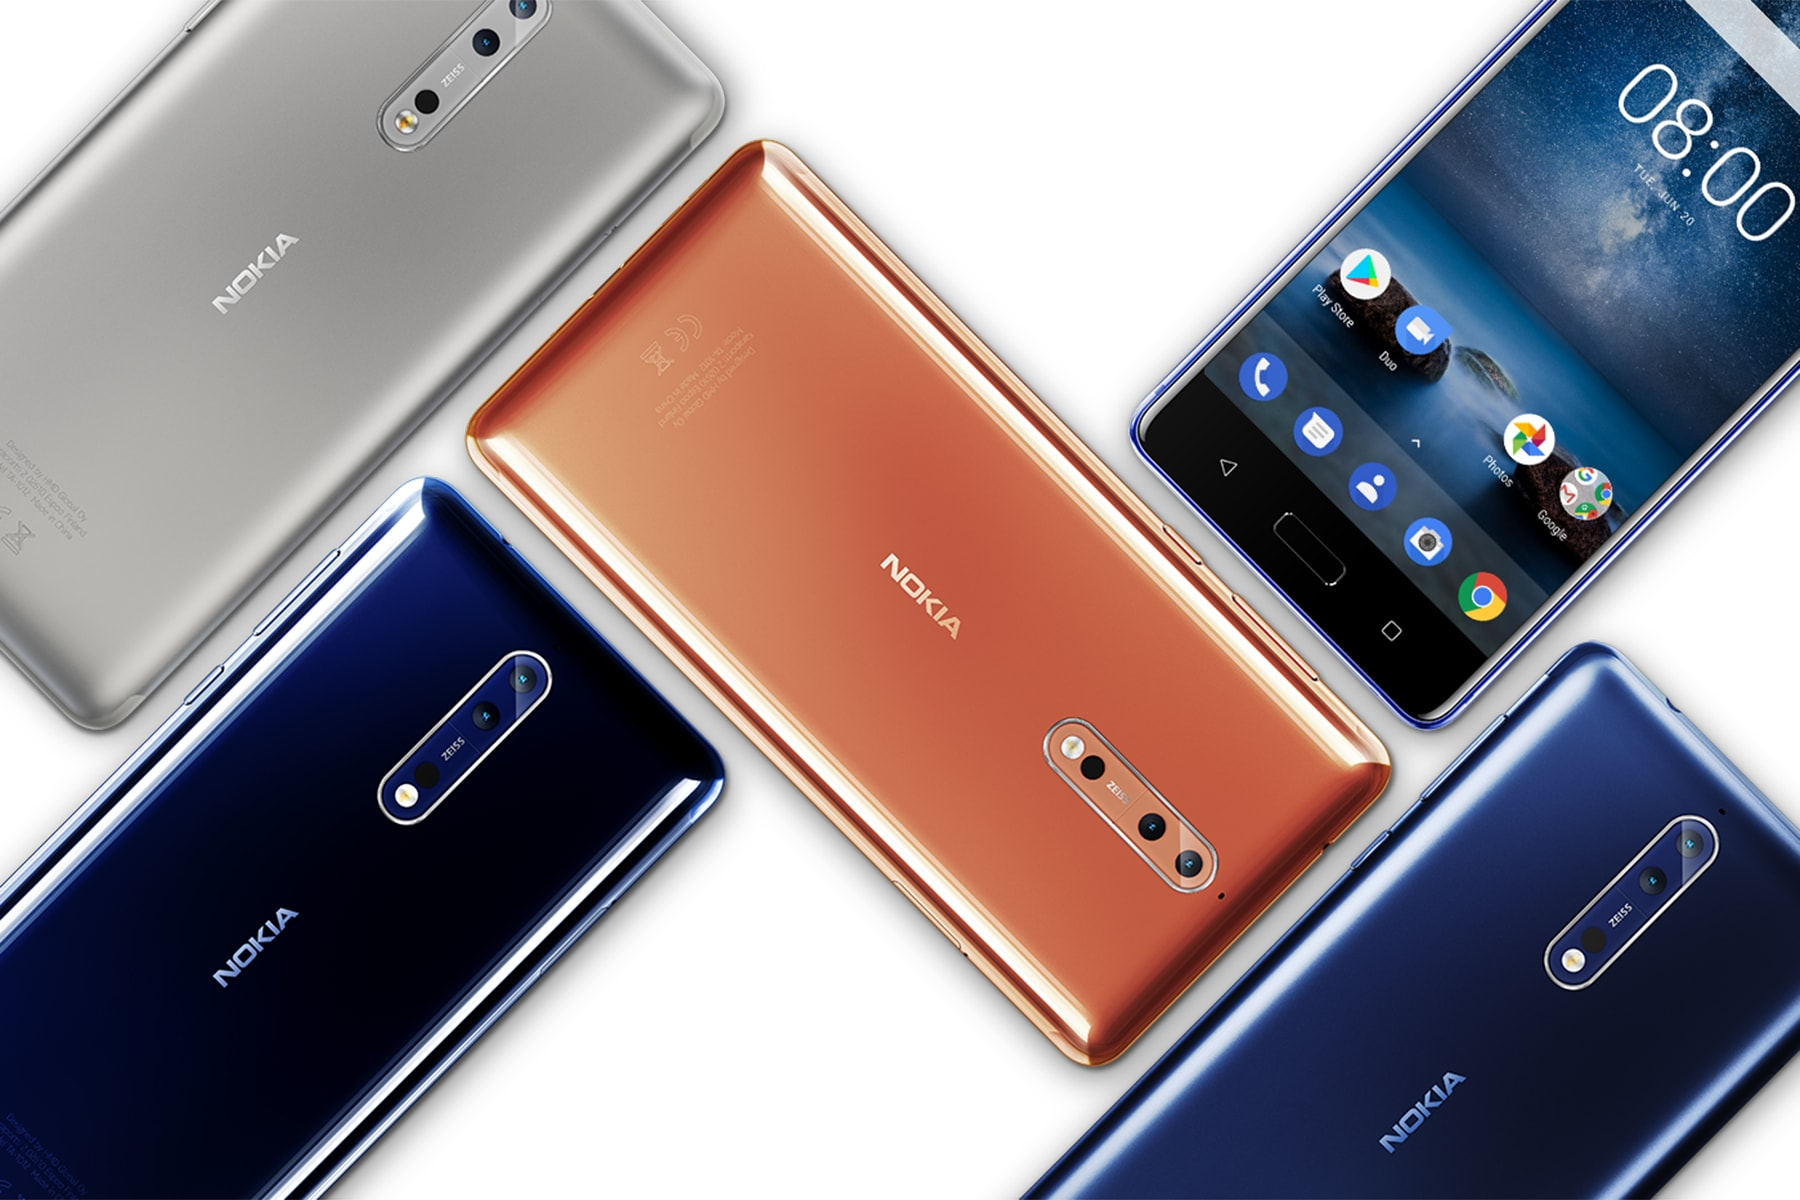 The Nokia 8 flagship is available to pre-order in the UK